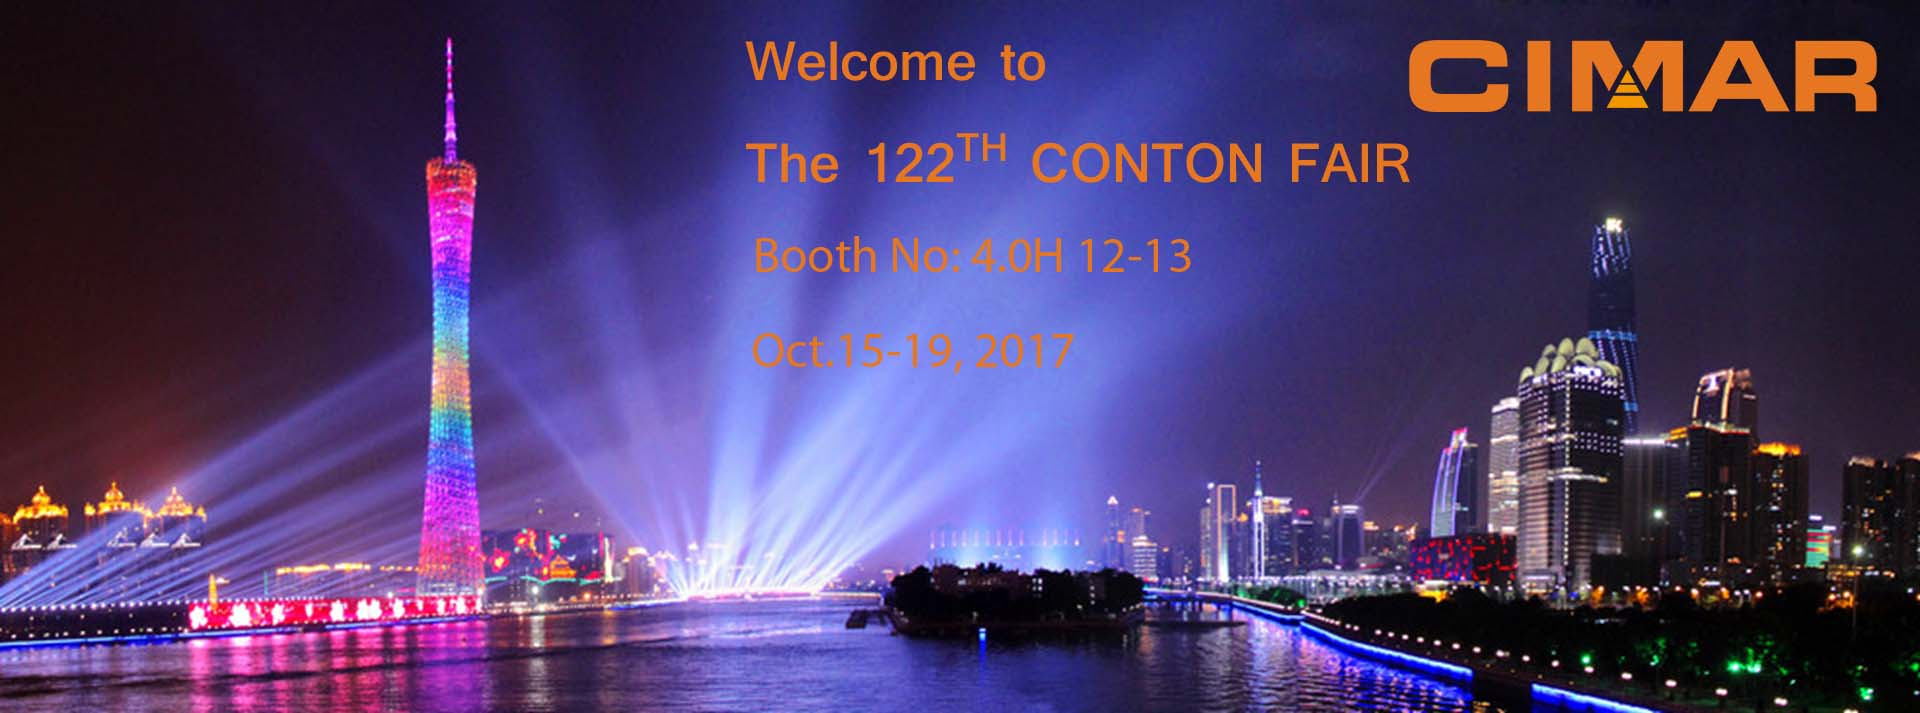 122th Canton Fair